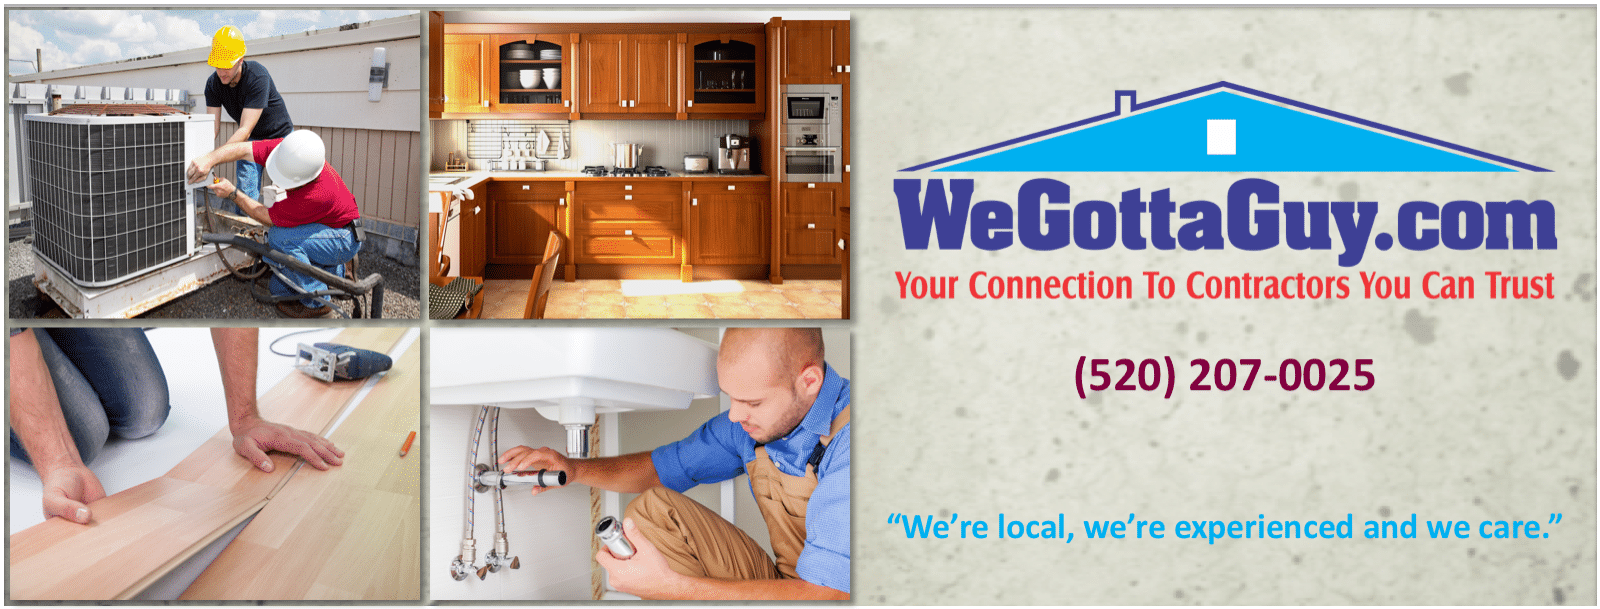 Plumbers Tucson, hardwood floors tucson, AC repair in Tucson, We Gotta Guy